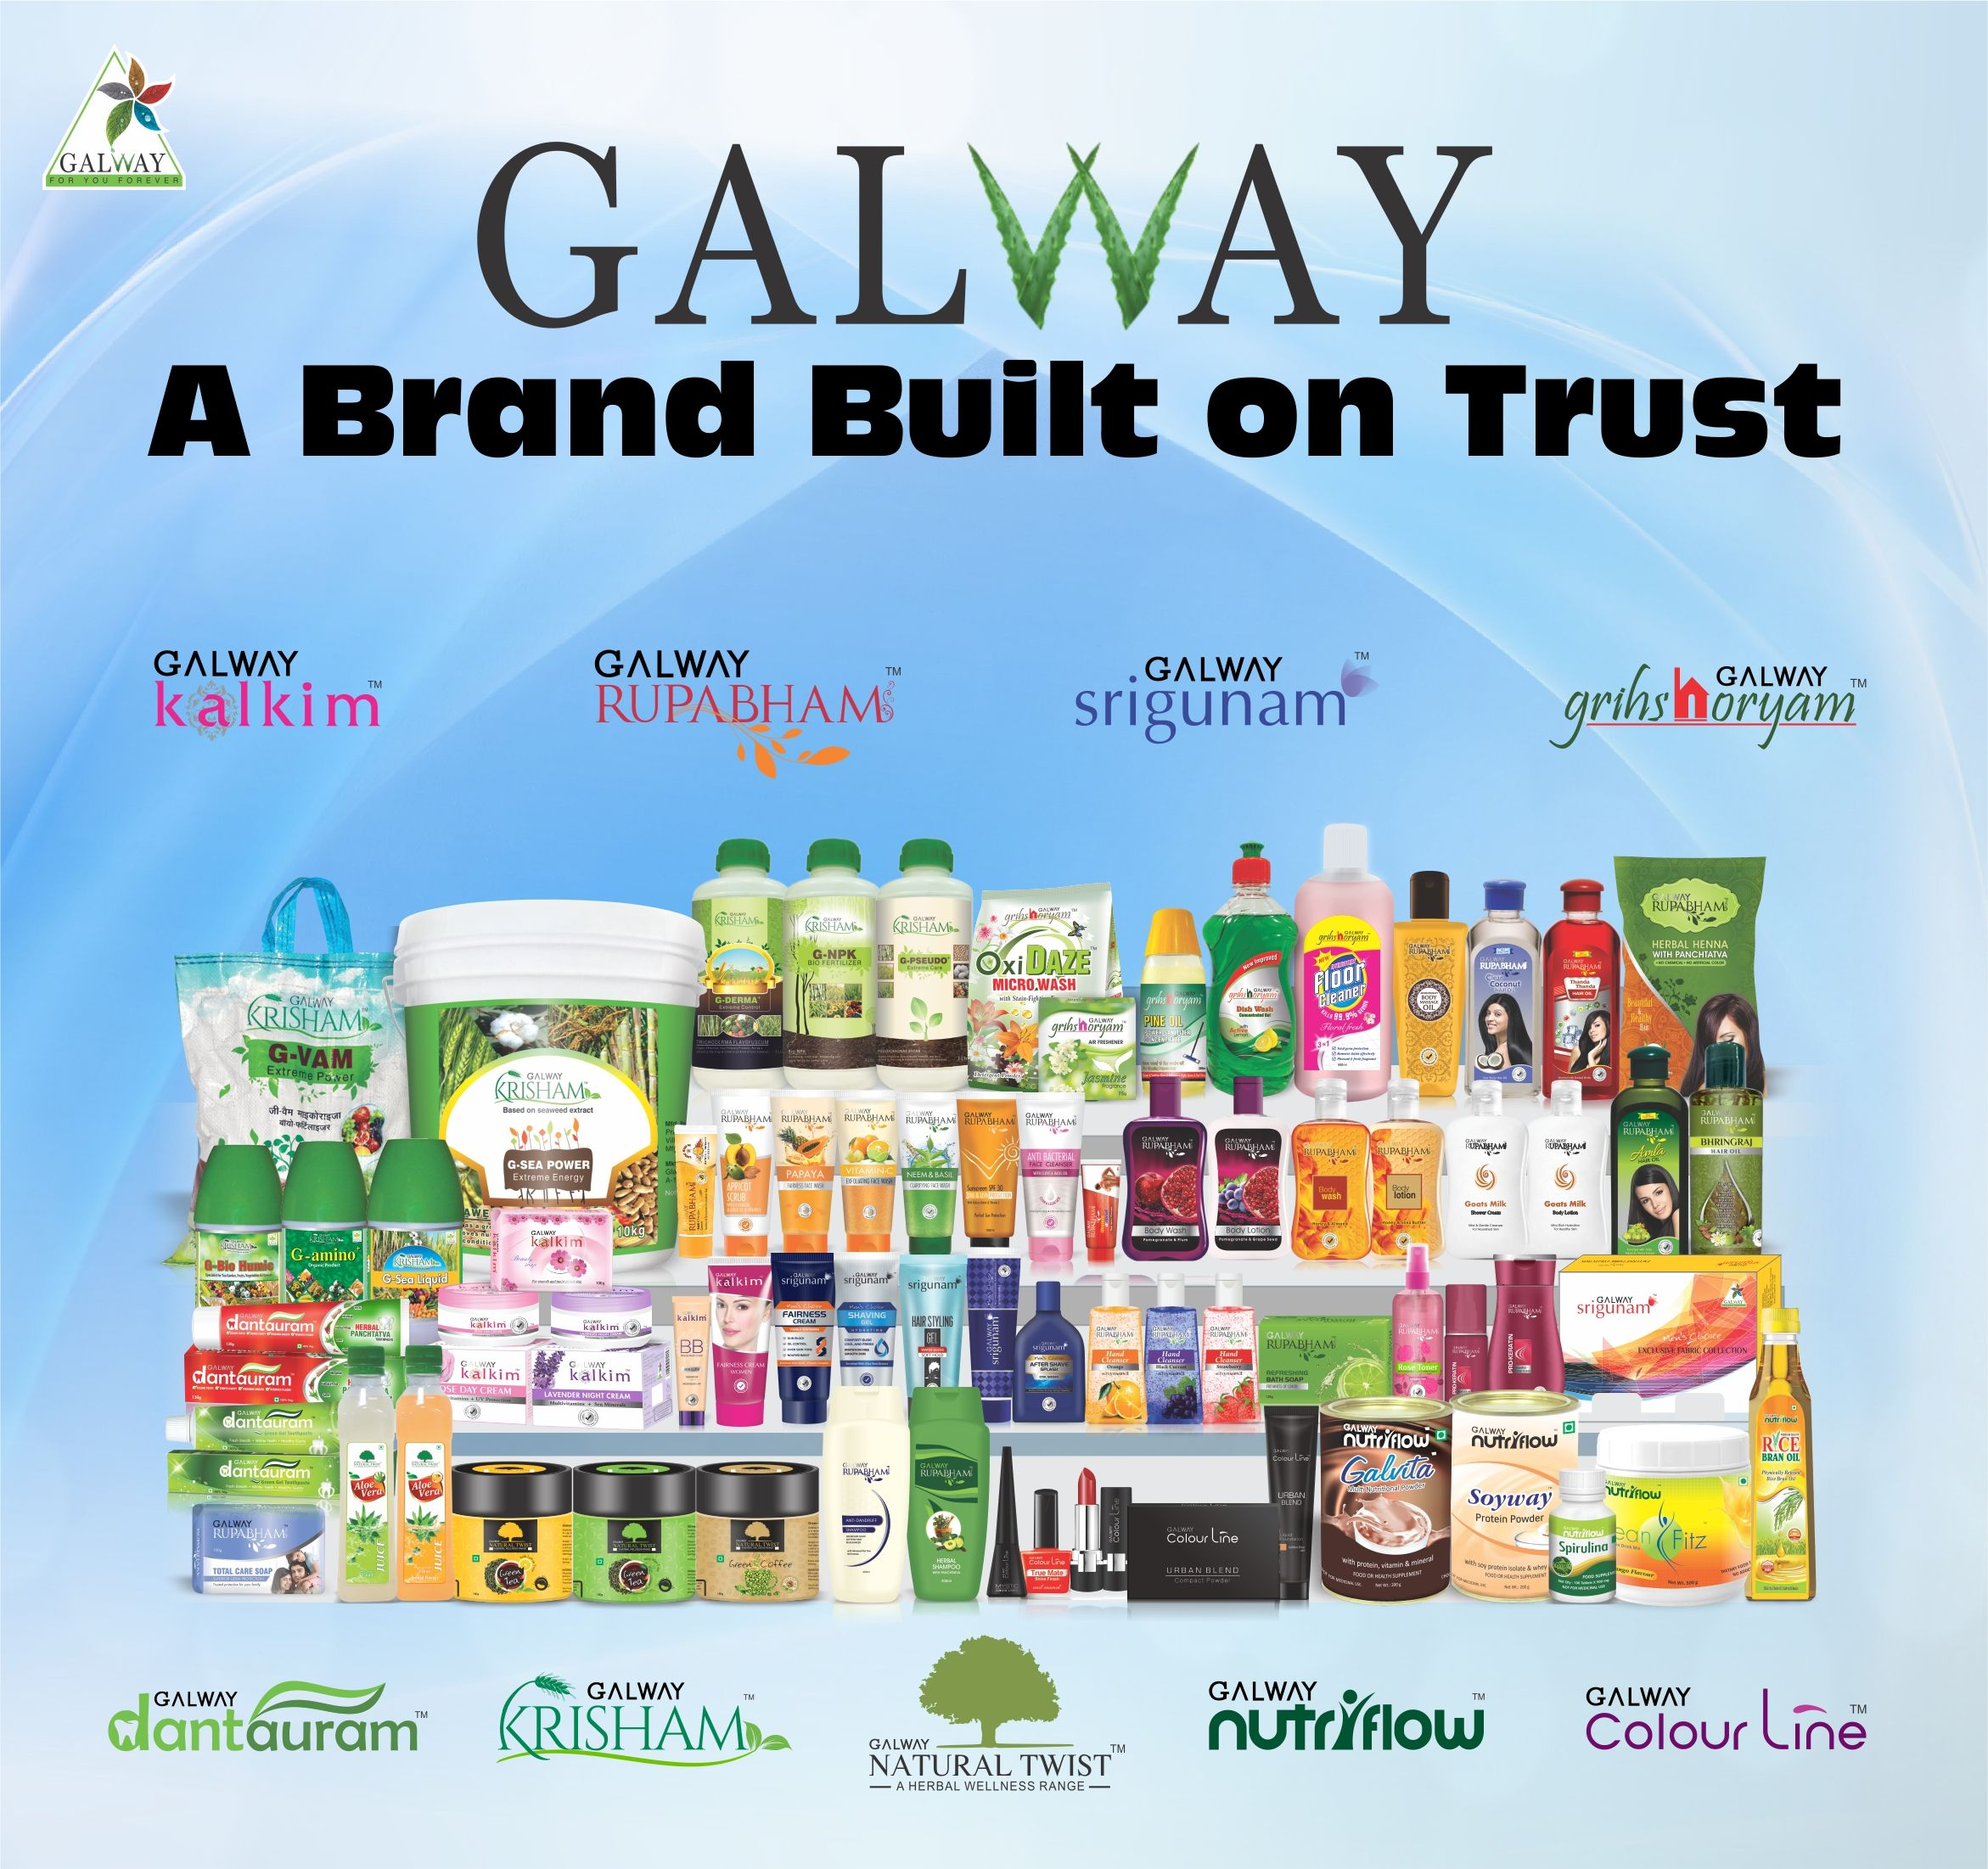 Galway symbolising purity trust and value